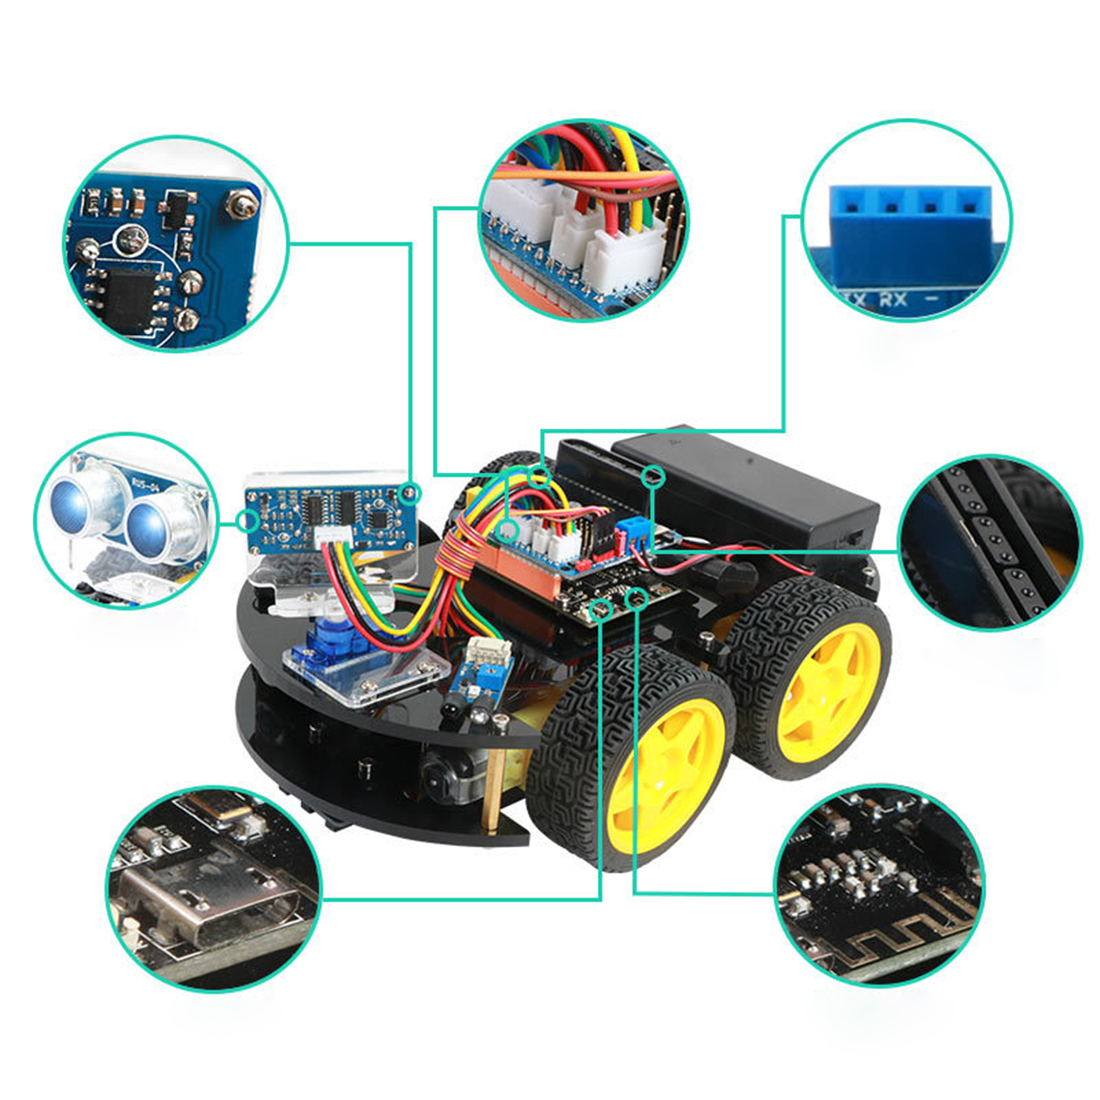 DIY Obstacle Avoidance Smart Programmable Robot Car Educational Learning Kit For Arduino Kits